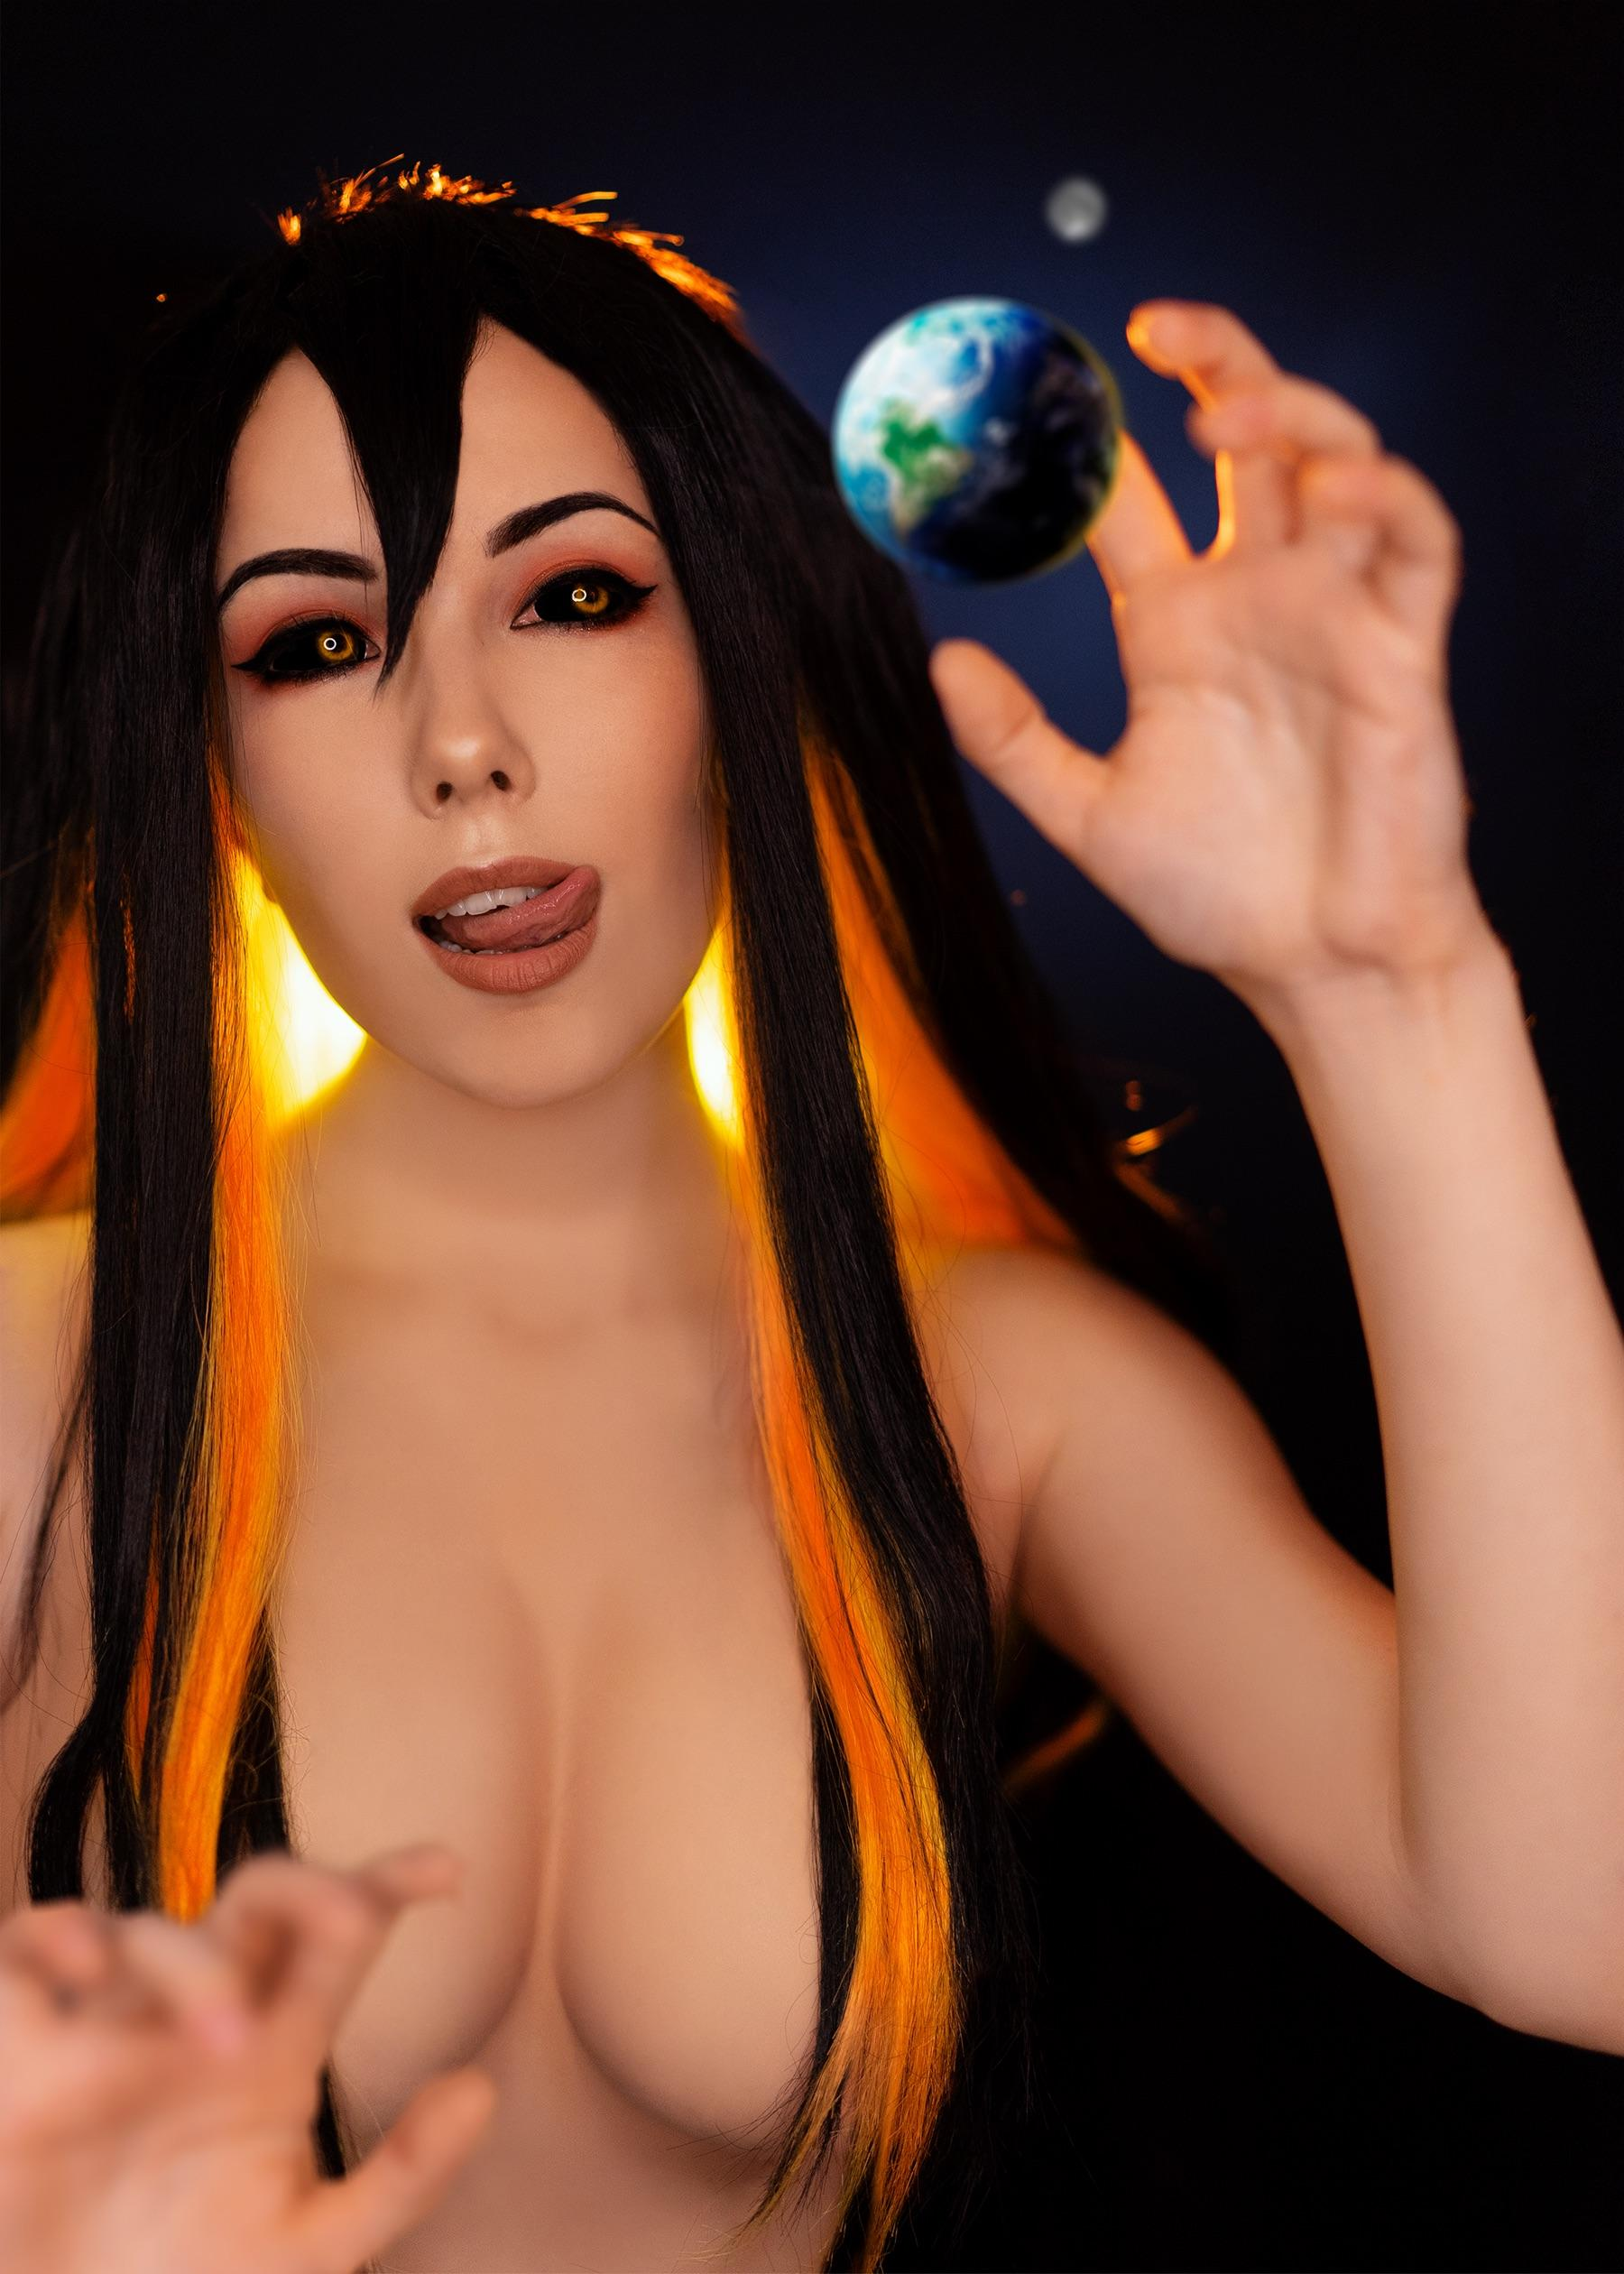 Helen Stifler As Black Hole-chan